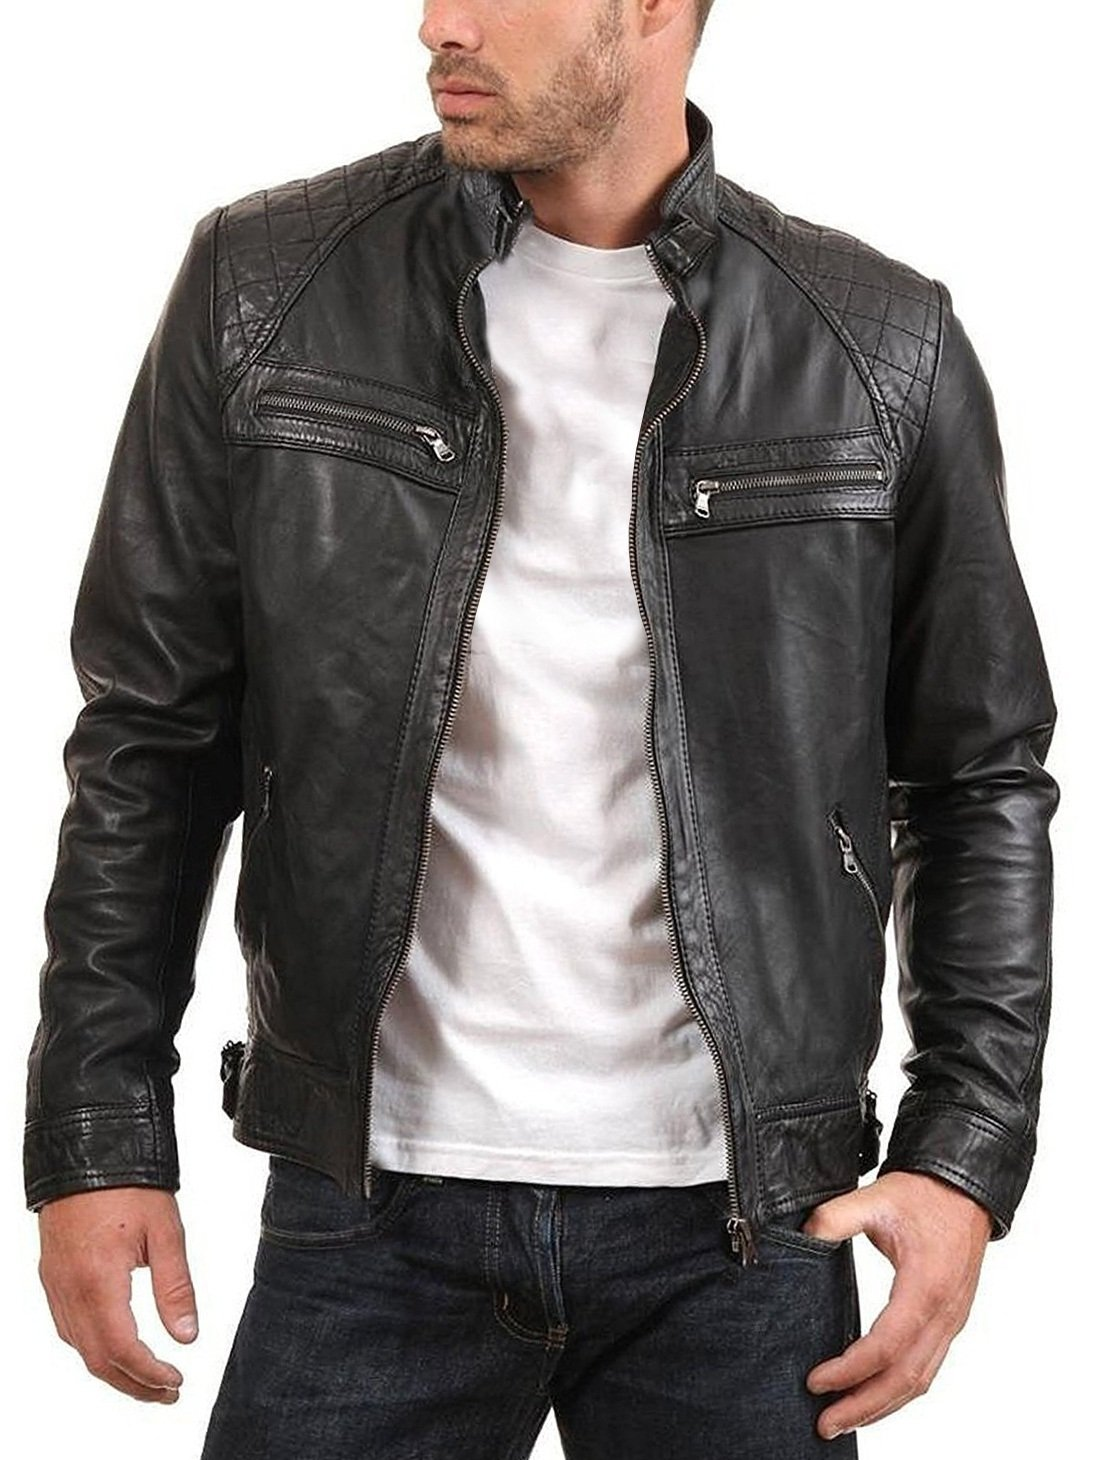 Urban Leather Factory Men's ENZO Black Genuine Lambskin Vintage Leather Jacket 1101-XS-Black-$P